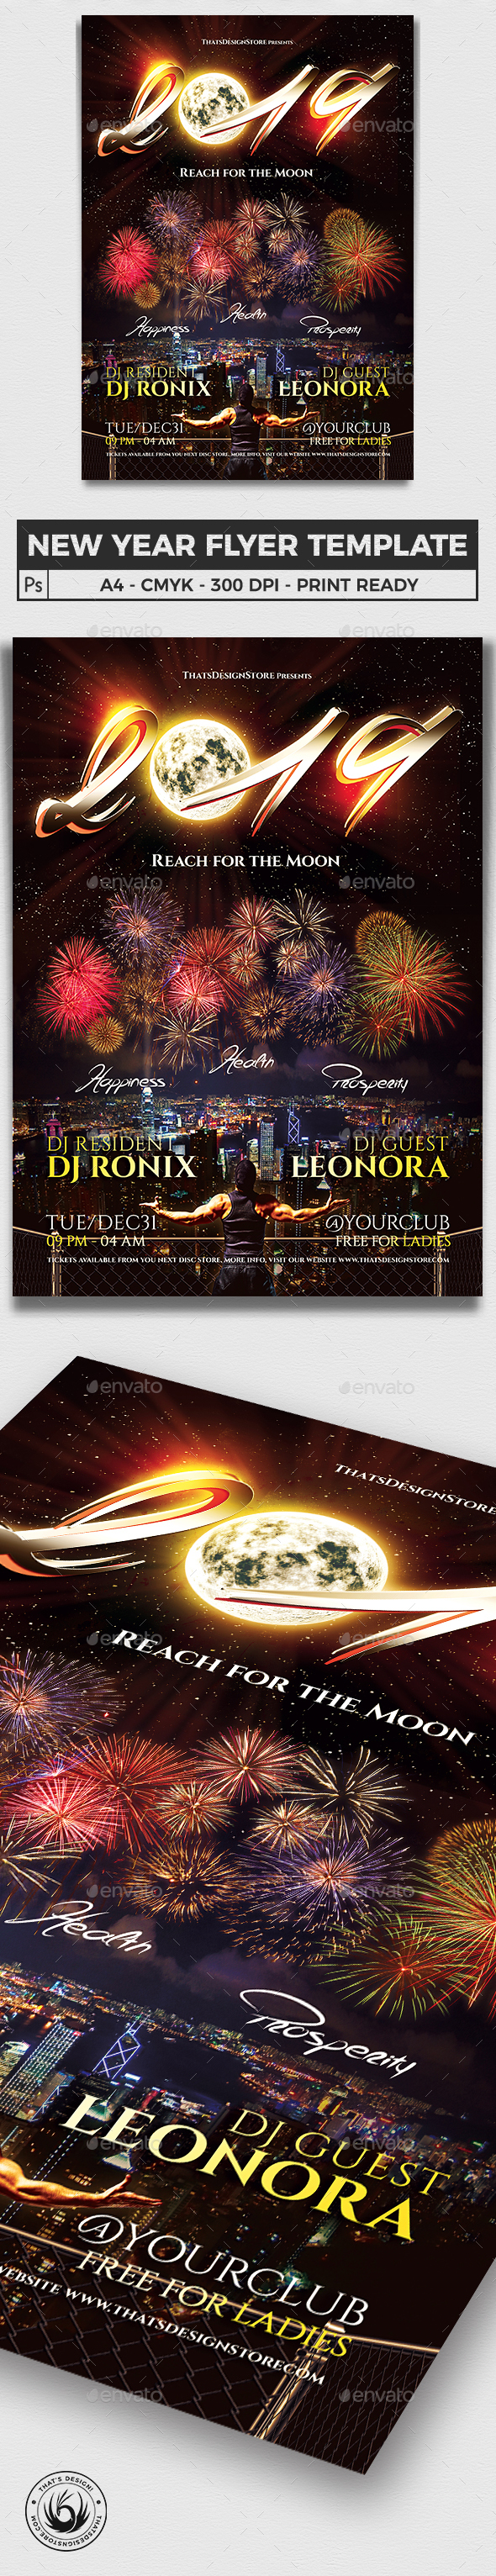 New Year Flyer Template V1 - Clubs & Parties Events